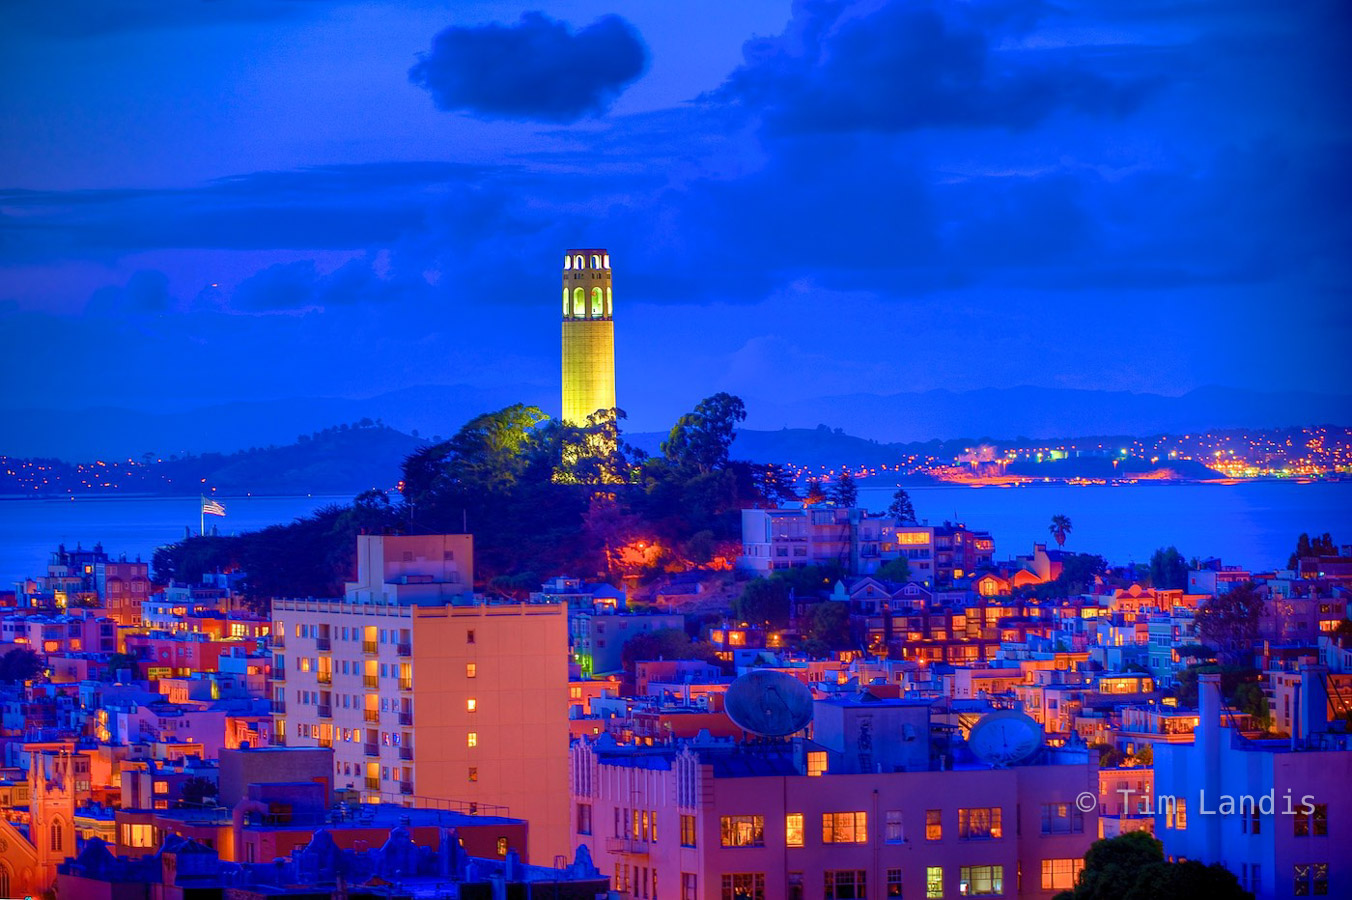 Coit Tower after the sunsets, photo